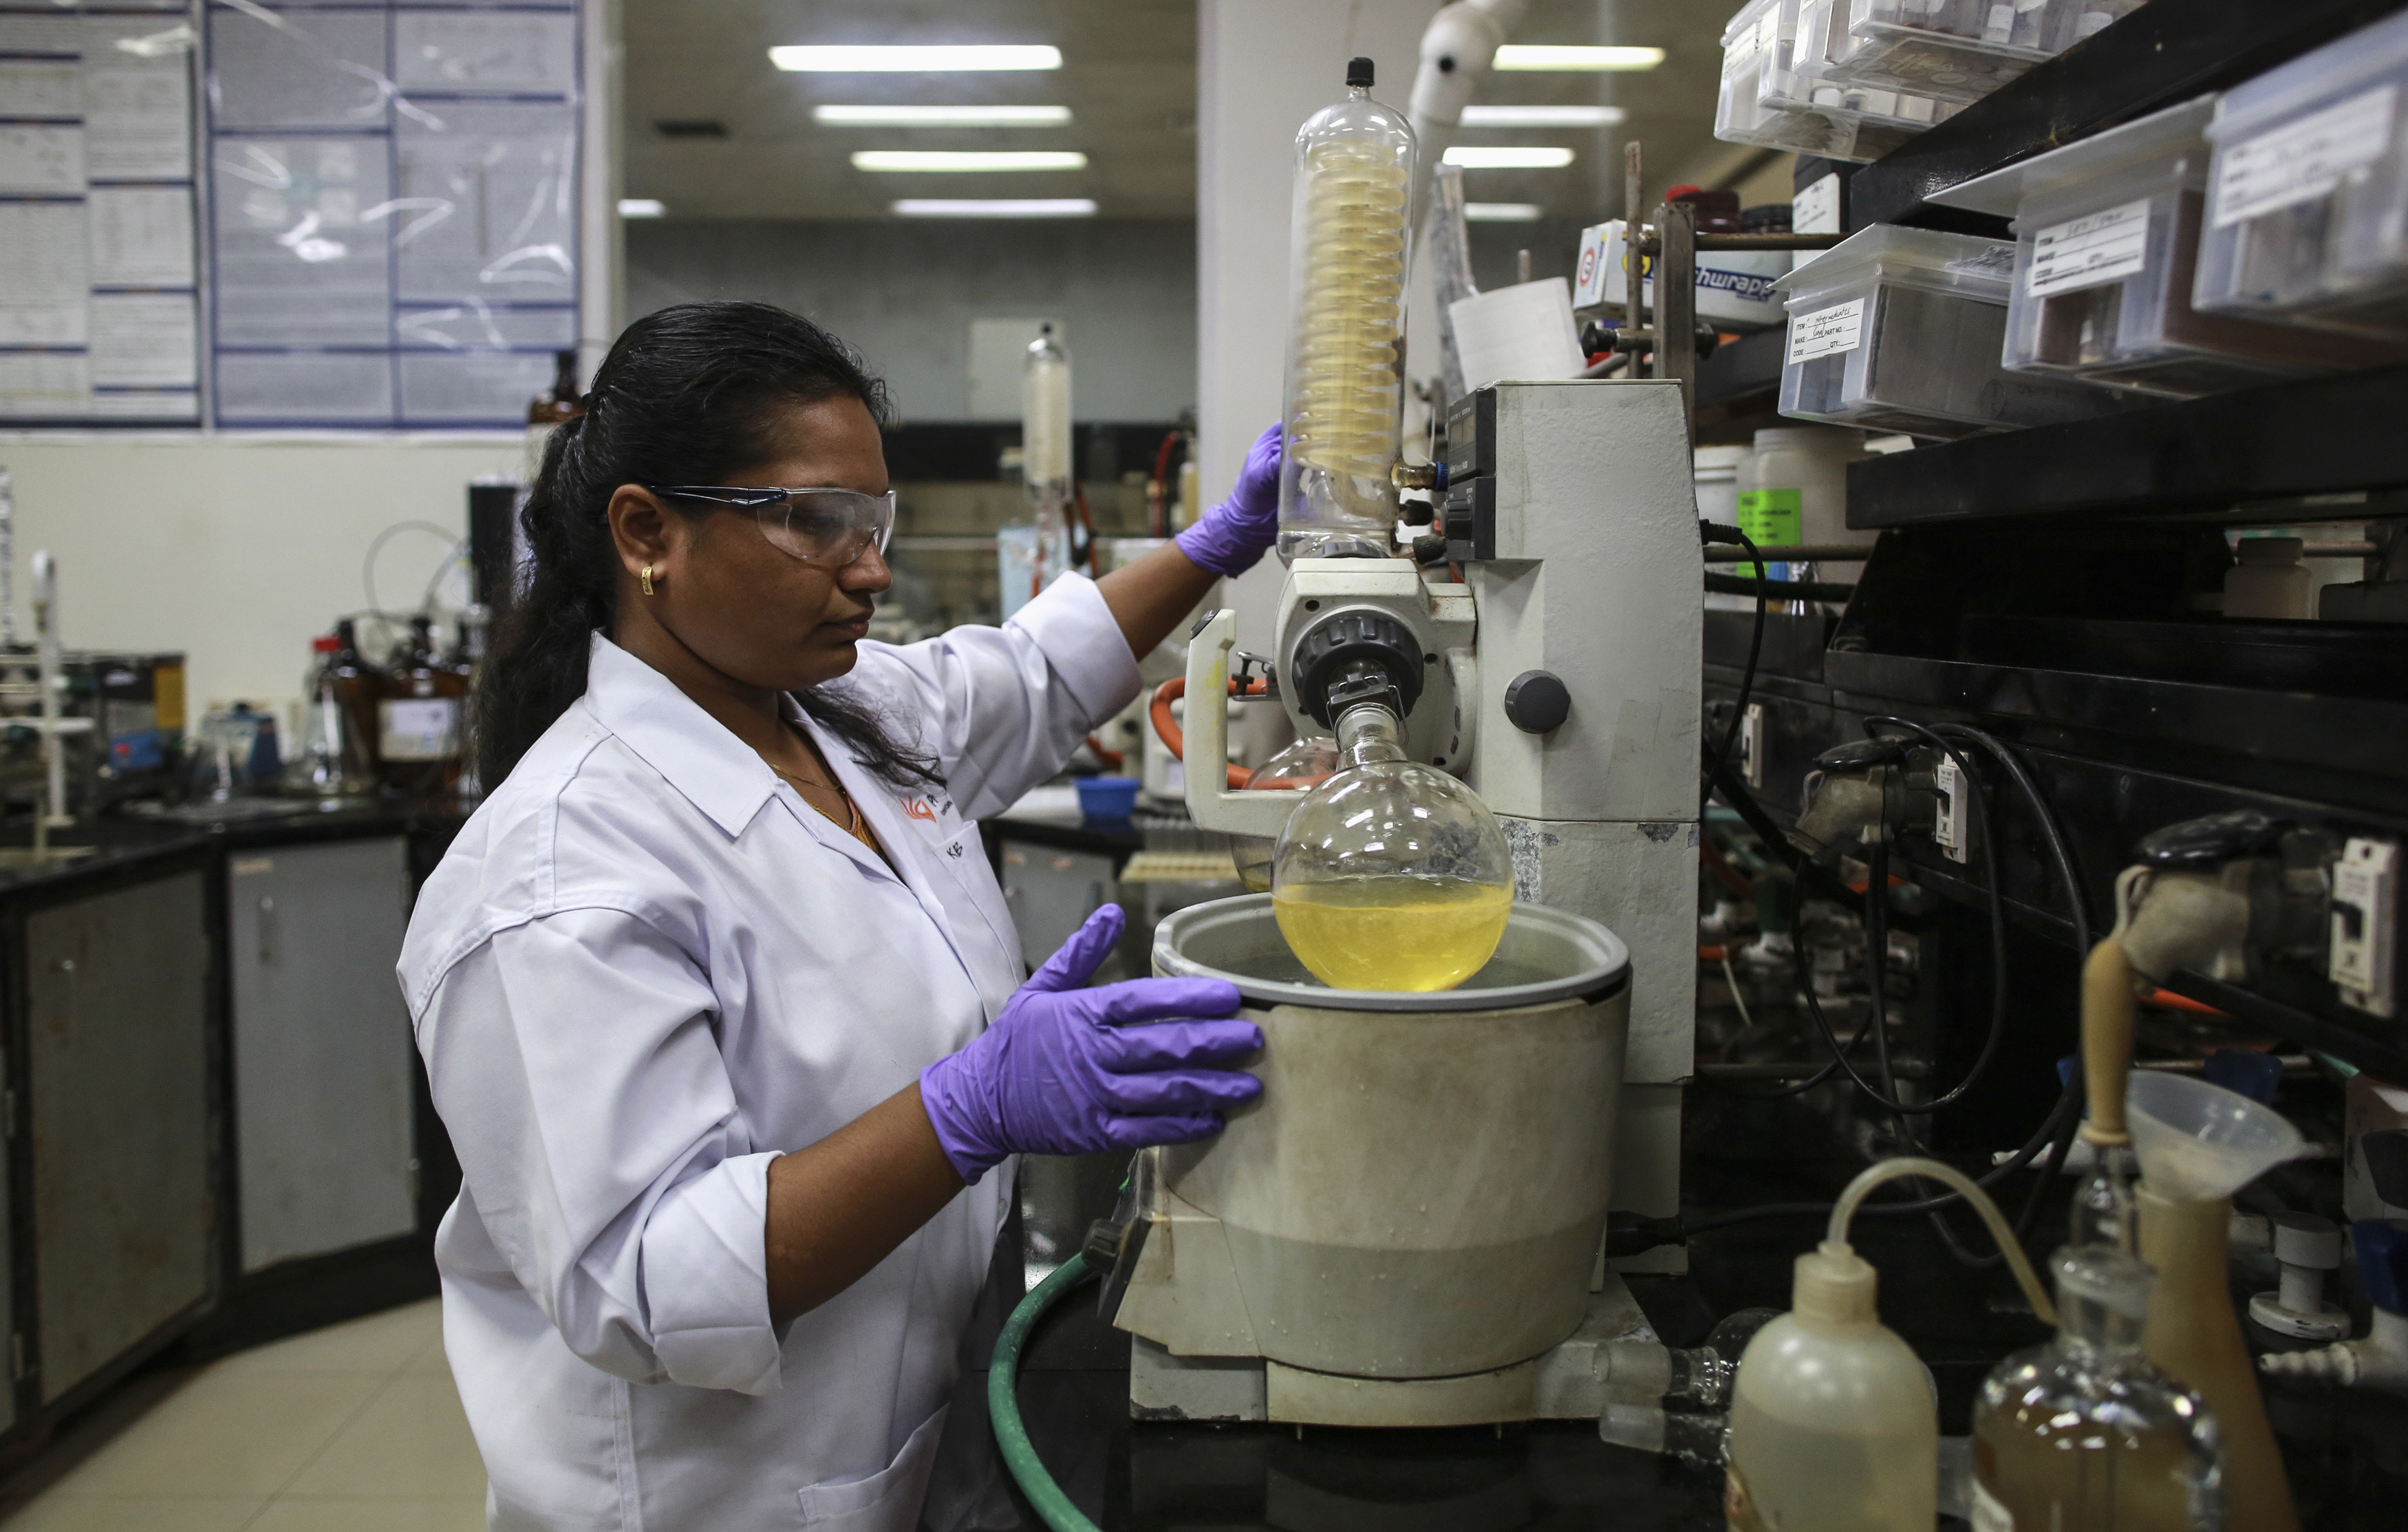 An employee works inside a laboratory at Piramal's Research Centre in Mumbai August 11, 2014. Indian drugmakers are fleeing a regulatory morass at home and moving some research and development to Europe and the United States as they try to boost margins by producing high-value drugs. Companies like Piramal Enterprises Ltd, Sun Pharmaceutical Industries Ltd and Lupin Ltd are investing millions of dollars and placing their future growth in foreign regulators' hands, as they seek to add more complex drugs to their product lines. Picture taken August 11, 2014. To match INDIA-PHARMACEUTICALS/RESEARCH/ REUTERS/Danish Siddiqui (INDIA - Tags: HEALTH BUSINESS DRUGS SOCIETY SCIENCE TECHNOLOGY) - GM1EA8T0EJC01